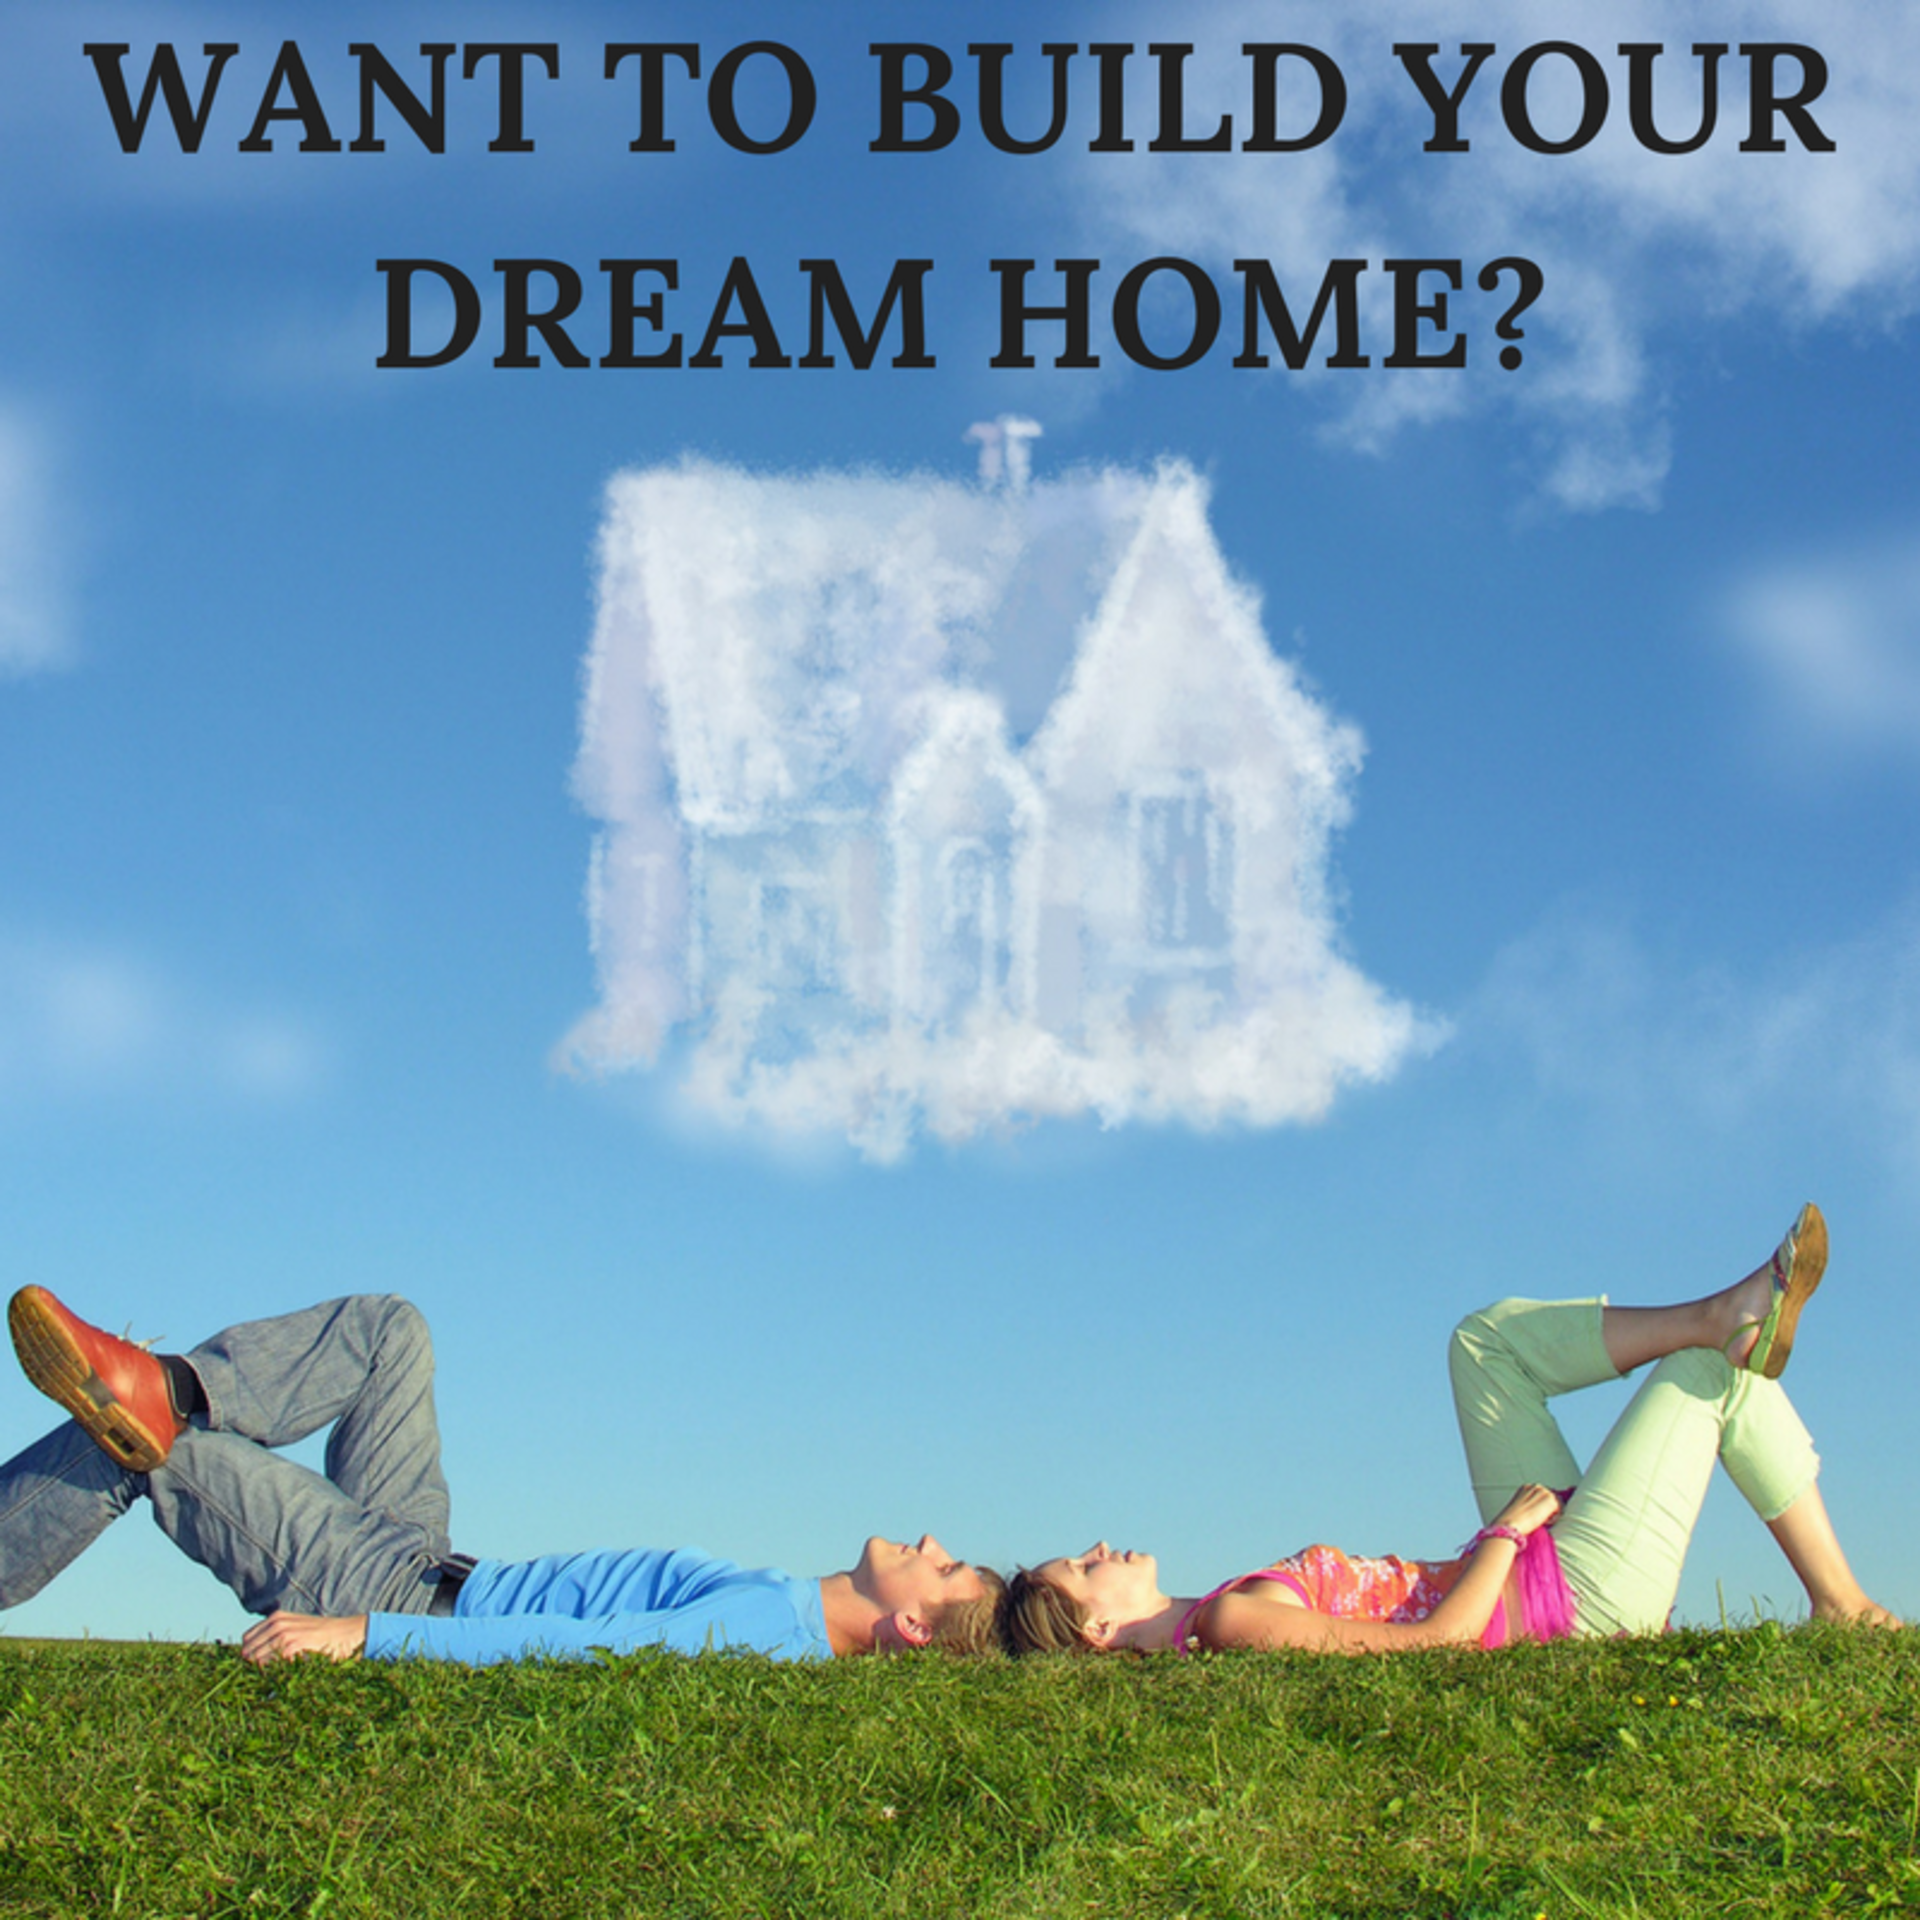 Want to Build Your Dream Home?